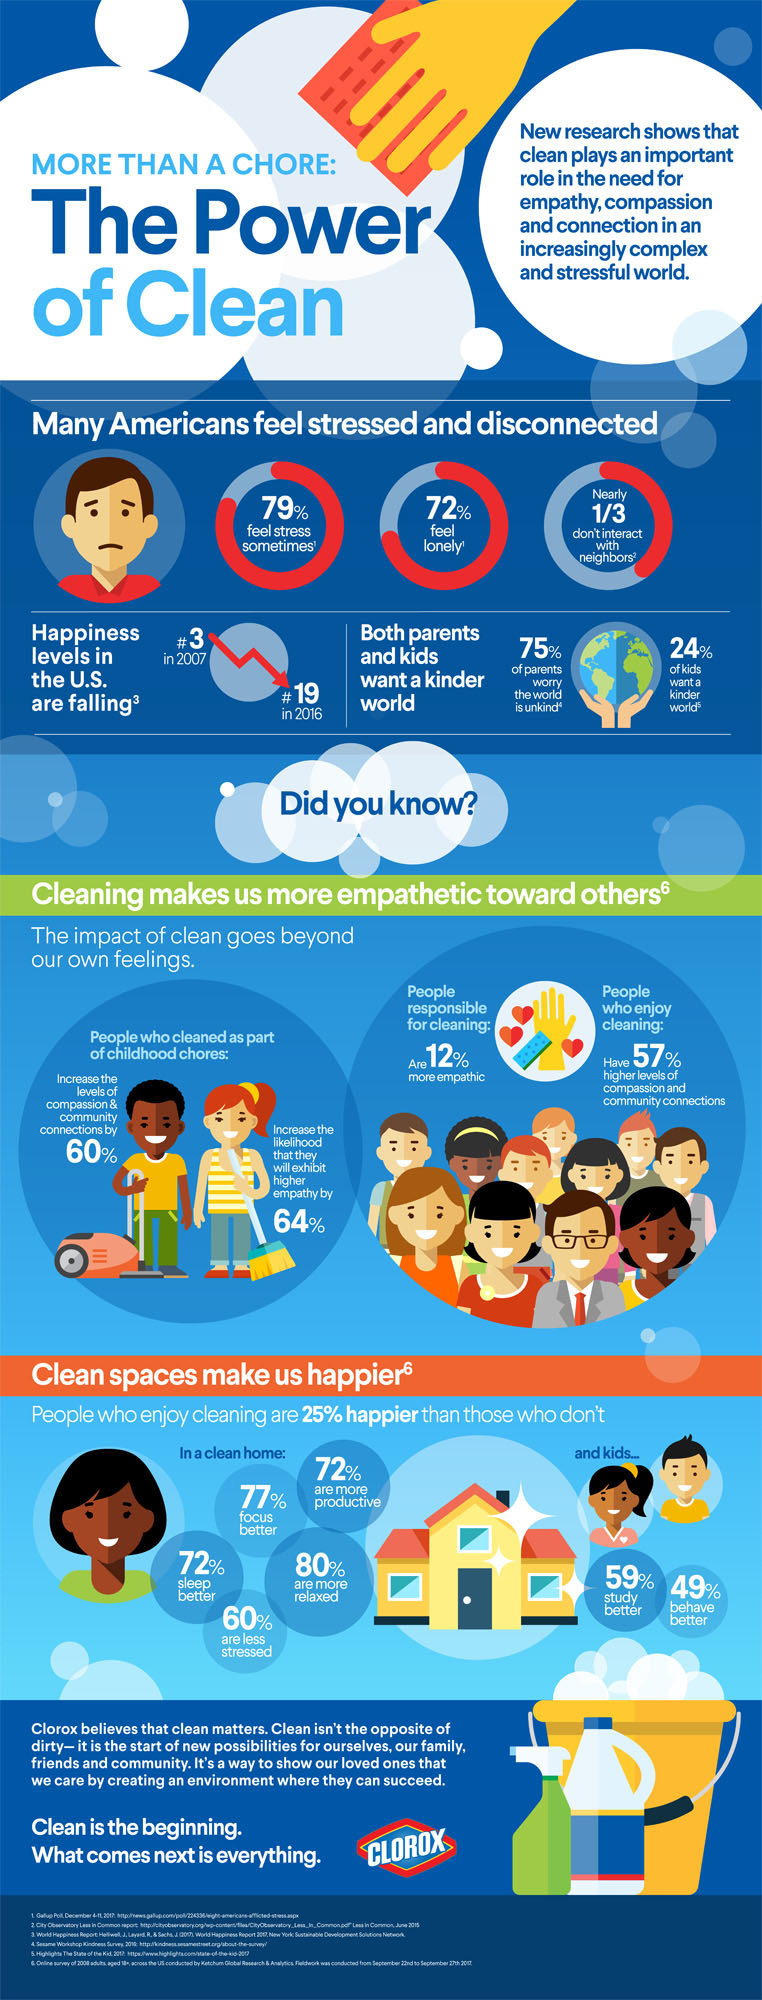 How does clean impact how we feel, act and engage with others?  Clorox conducted research to validate the true impact of clean beyond getting rid of dirt and mess.